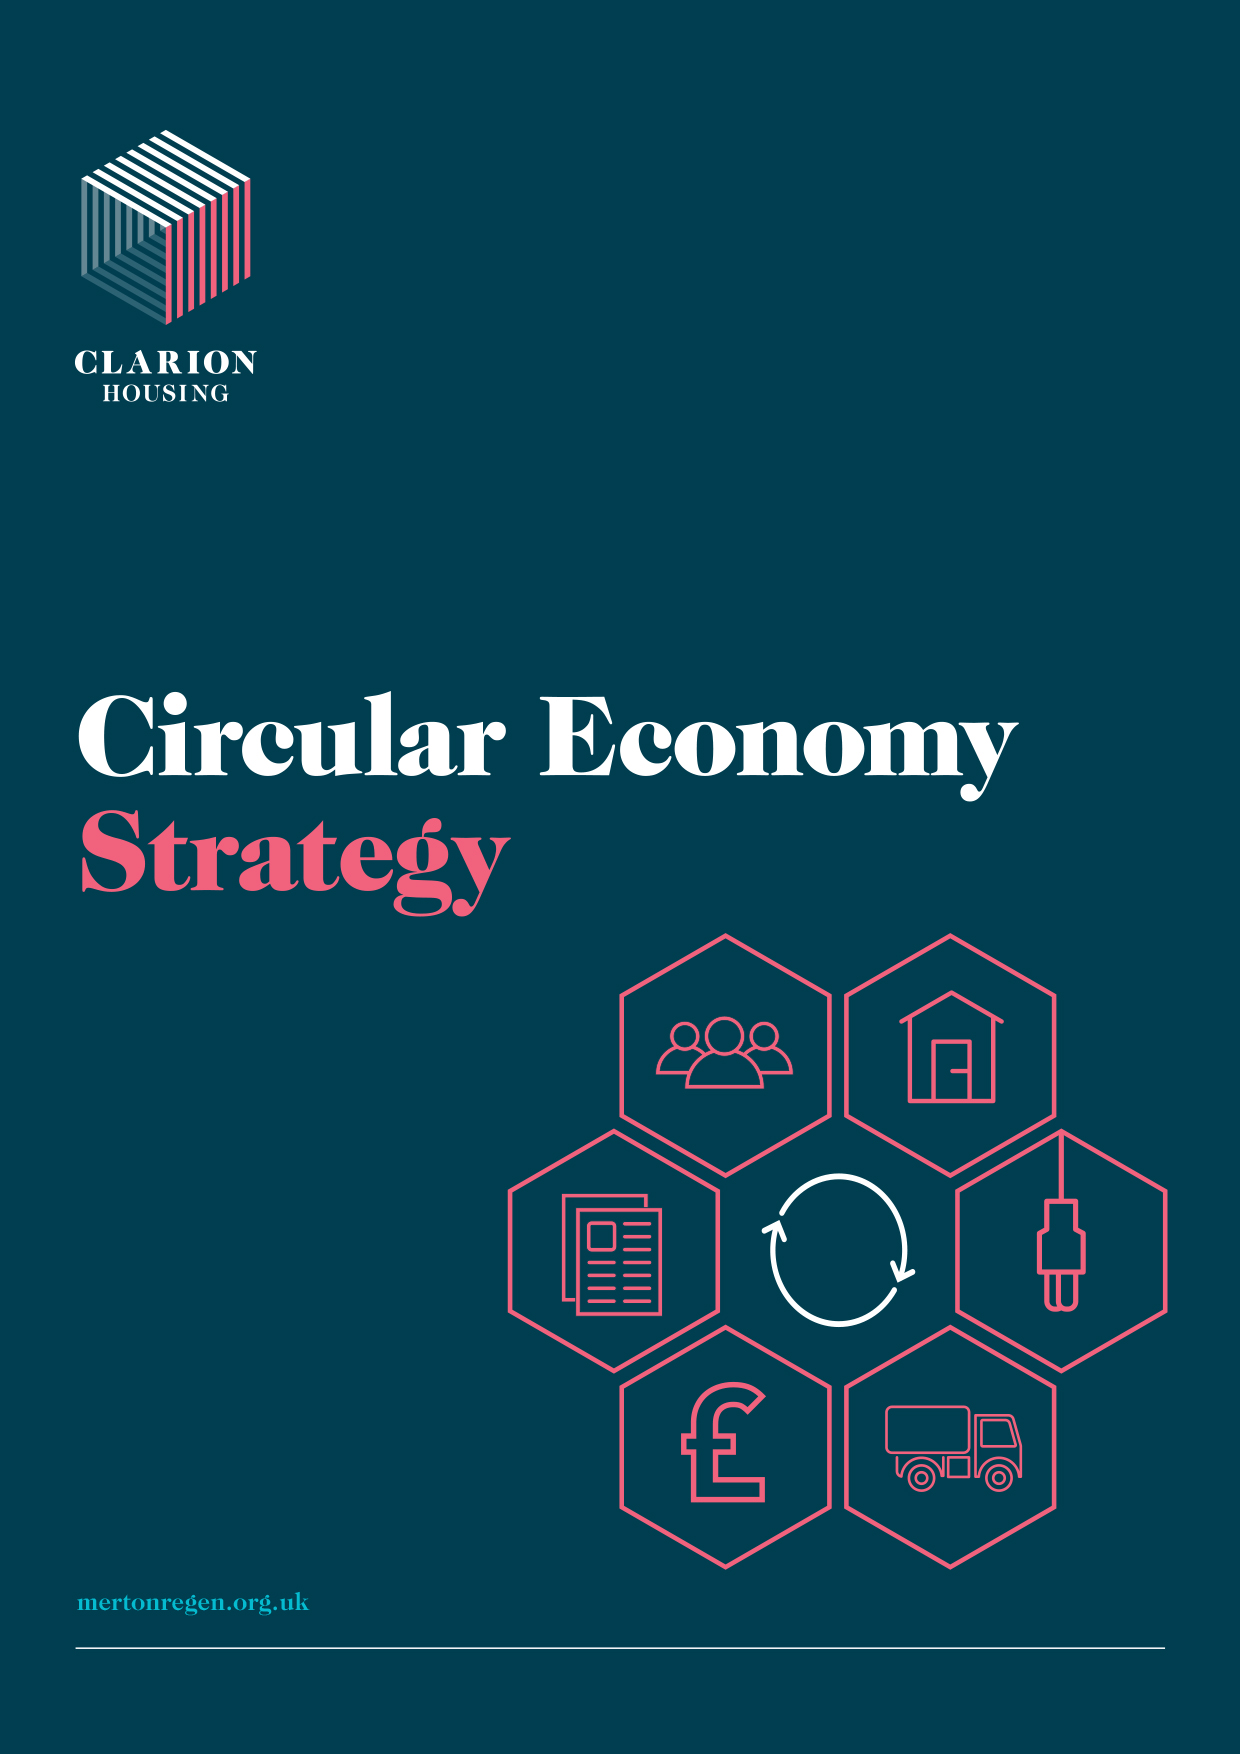 Clarion Housing Circular Economy Strategy